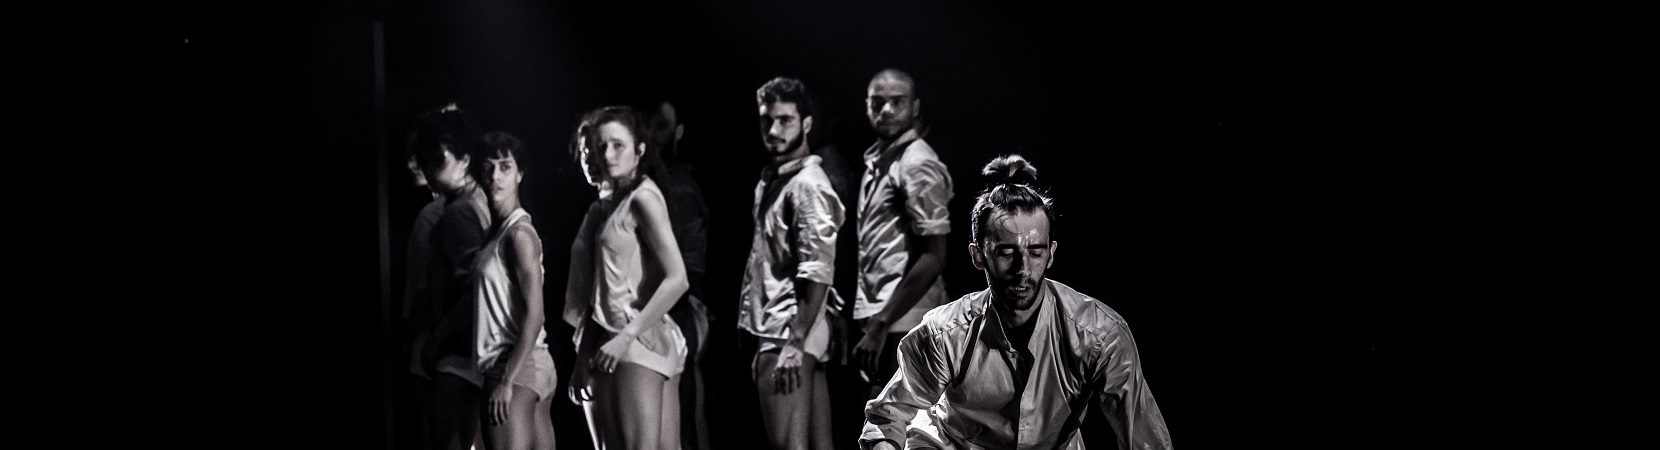 Horses-in-the-Sky-by-Rami-Beer-Kibbutz-Contemporray-Dance-Company-The-Best-Dance-Company-Homepage-Slider-005